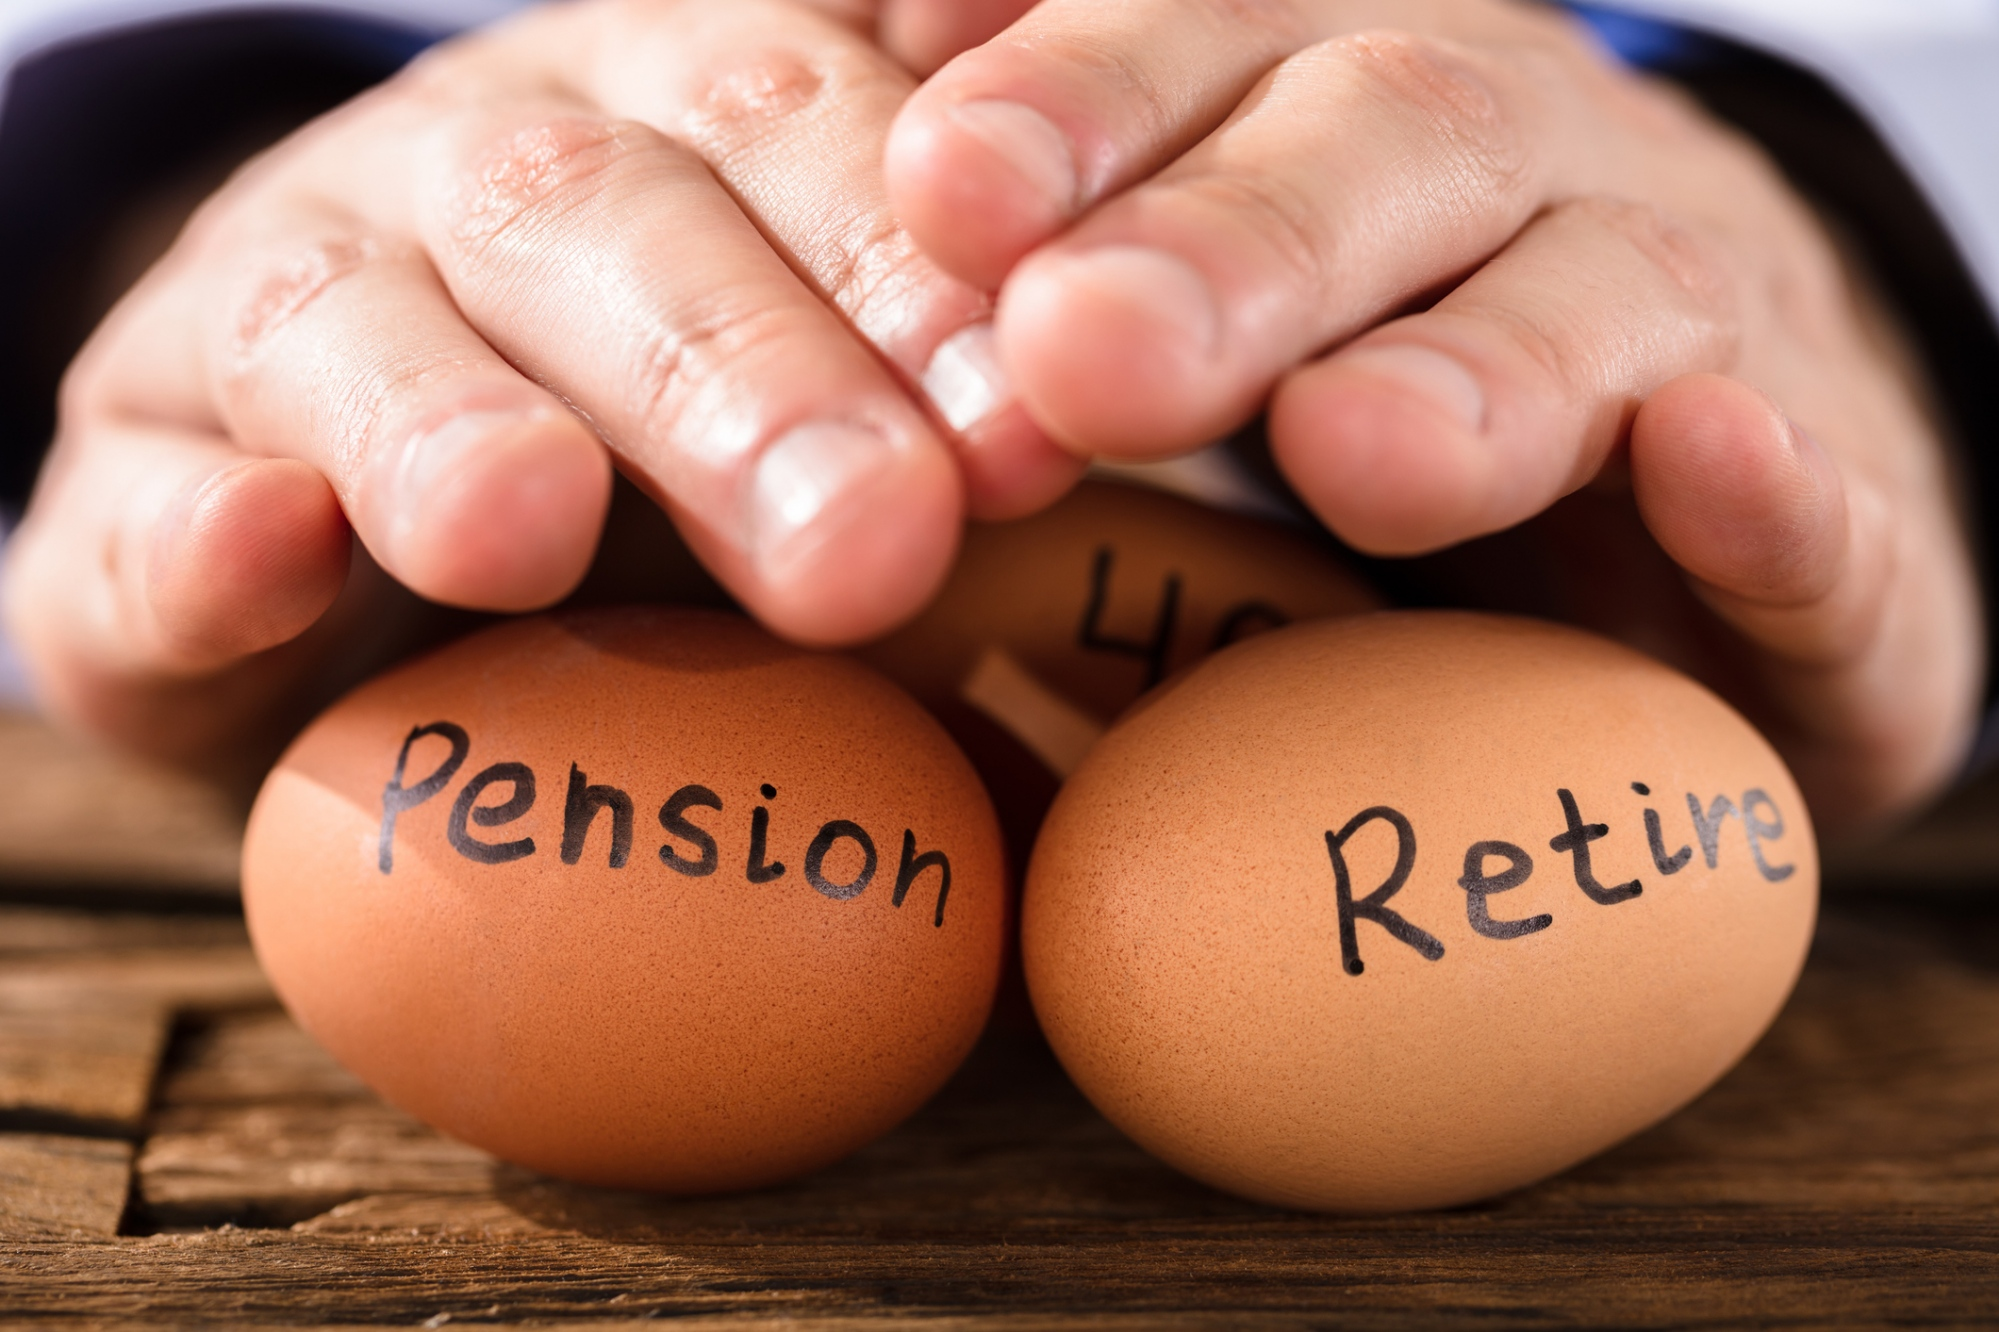 Protecting eggs that say pension and retire